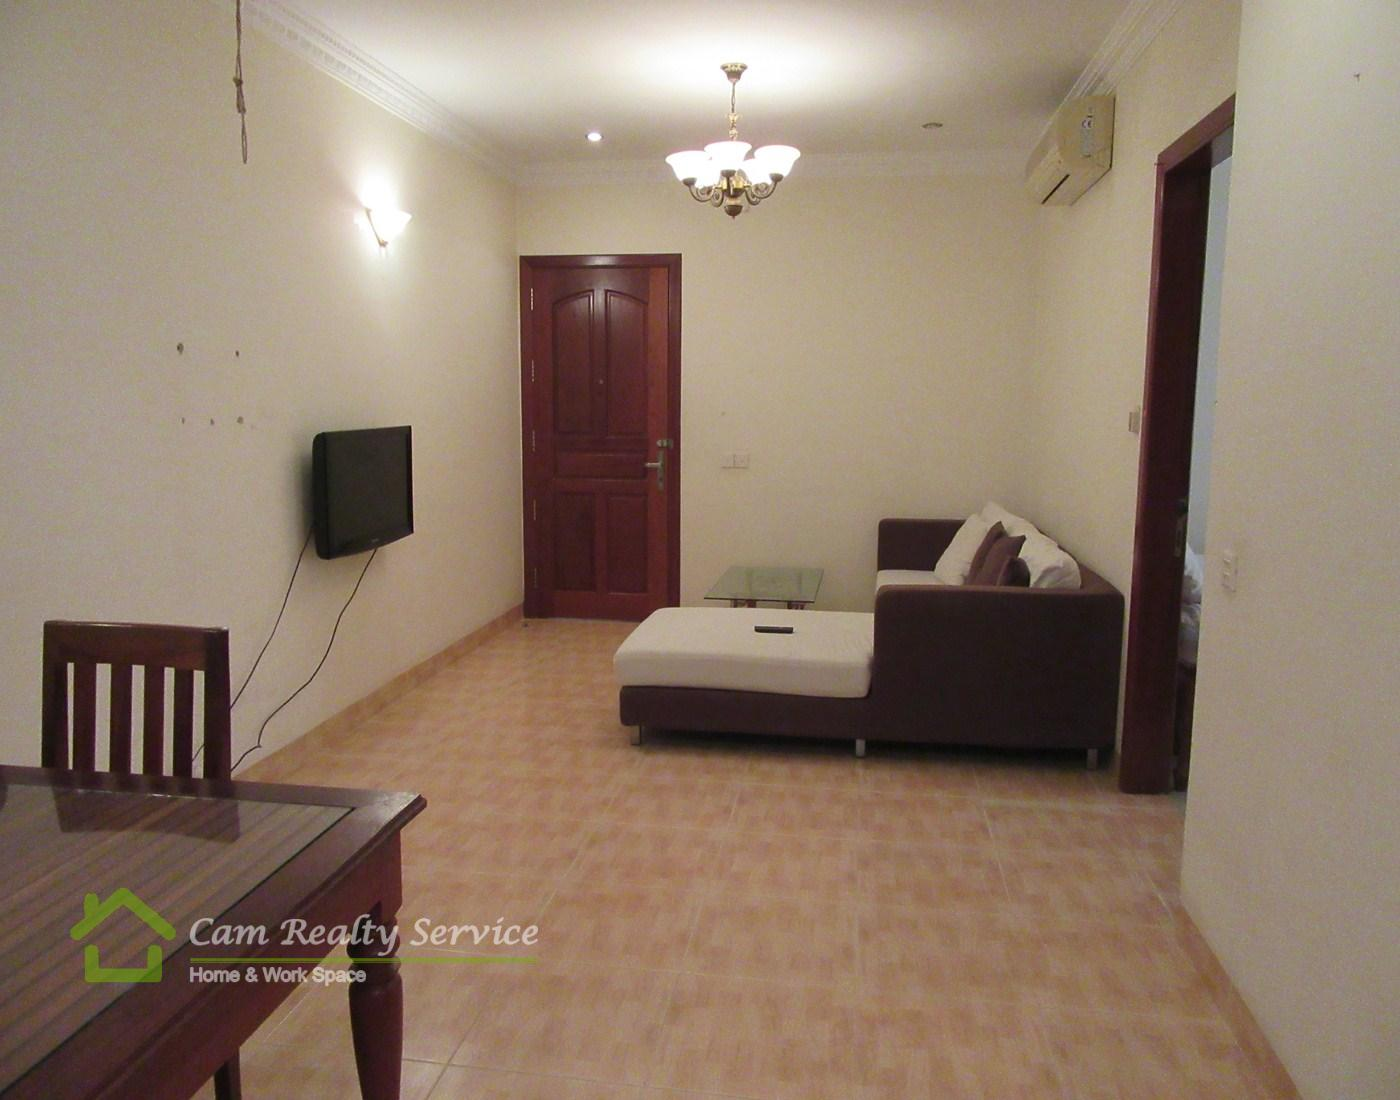 BKK1 area  Khmer style 2 bedrooms apartment available for rent 